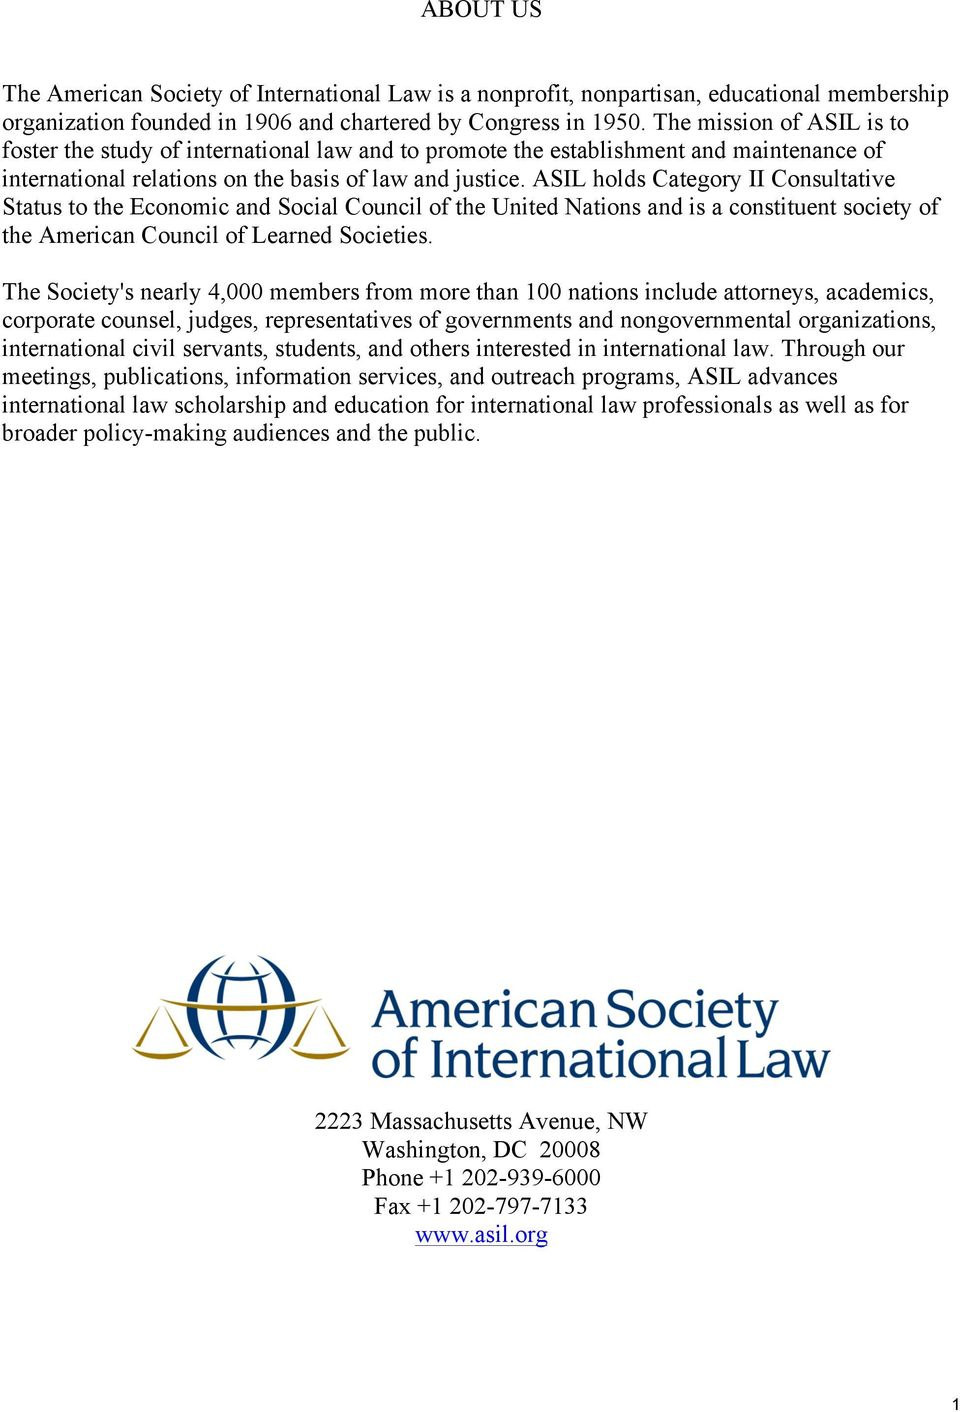 ASIL holds Category II Consultative Status to the Economic and Social Council of the United Nations and is a constituent society of the American Council of Learned Societies.